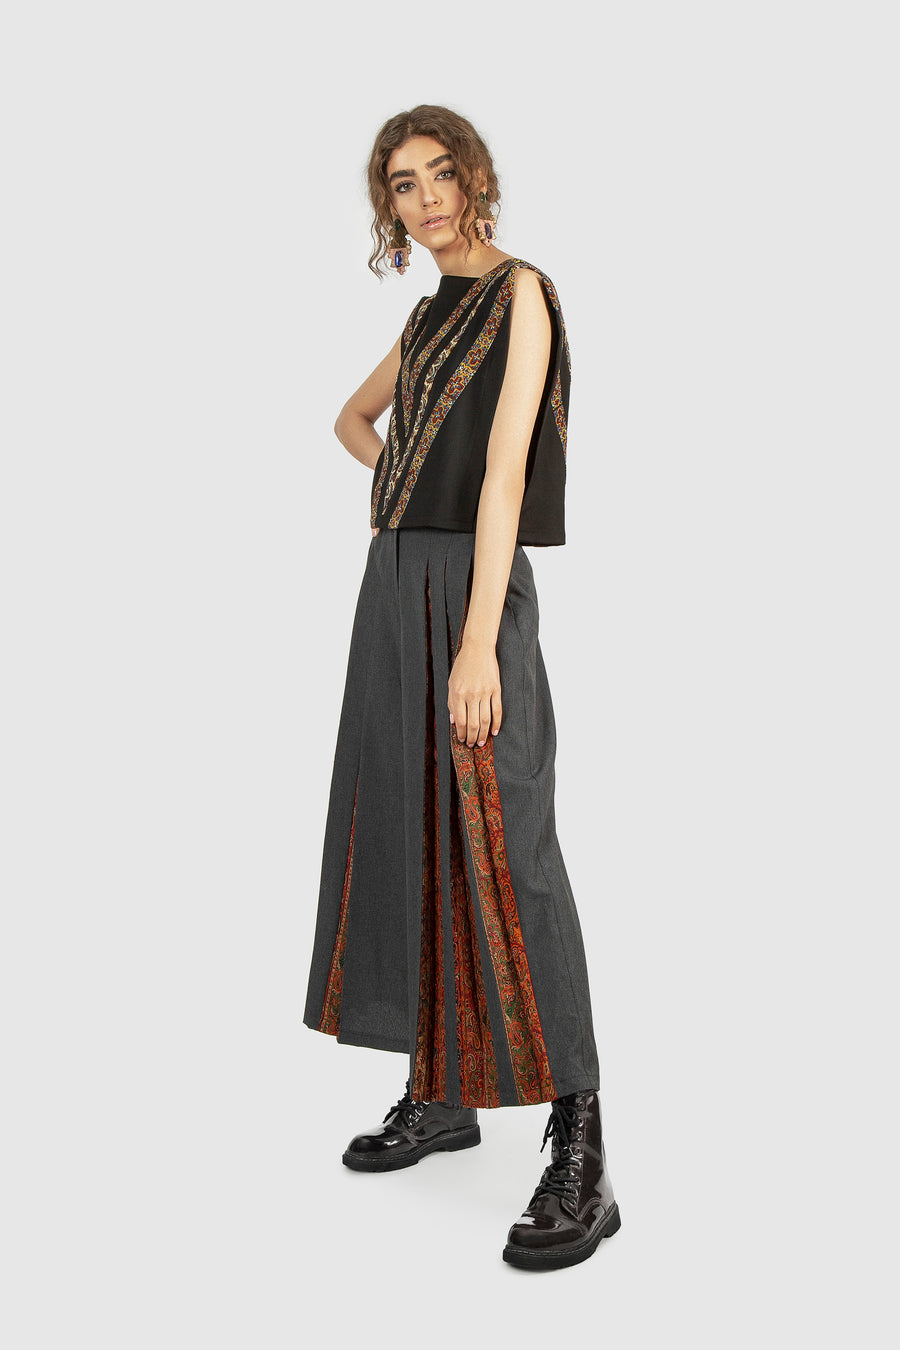 Crown Shell Flaming Culottes